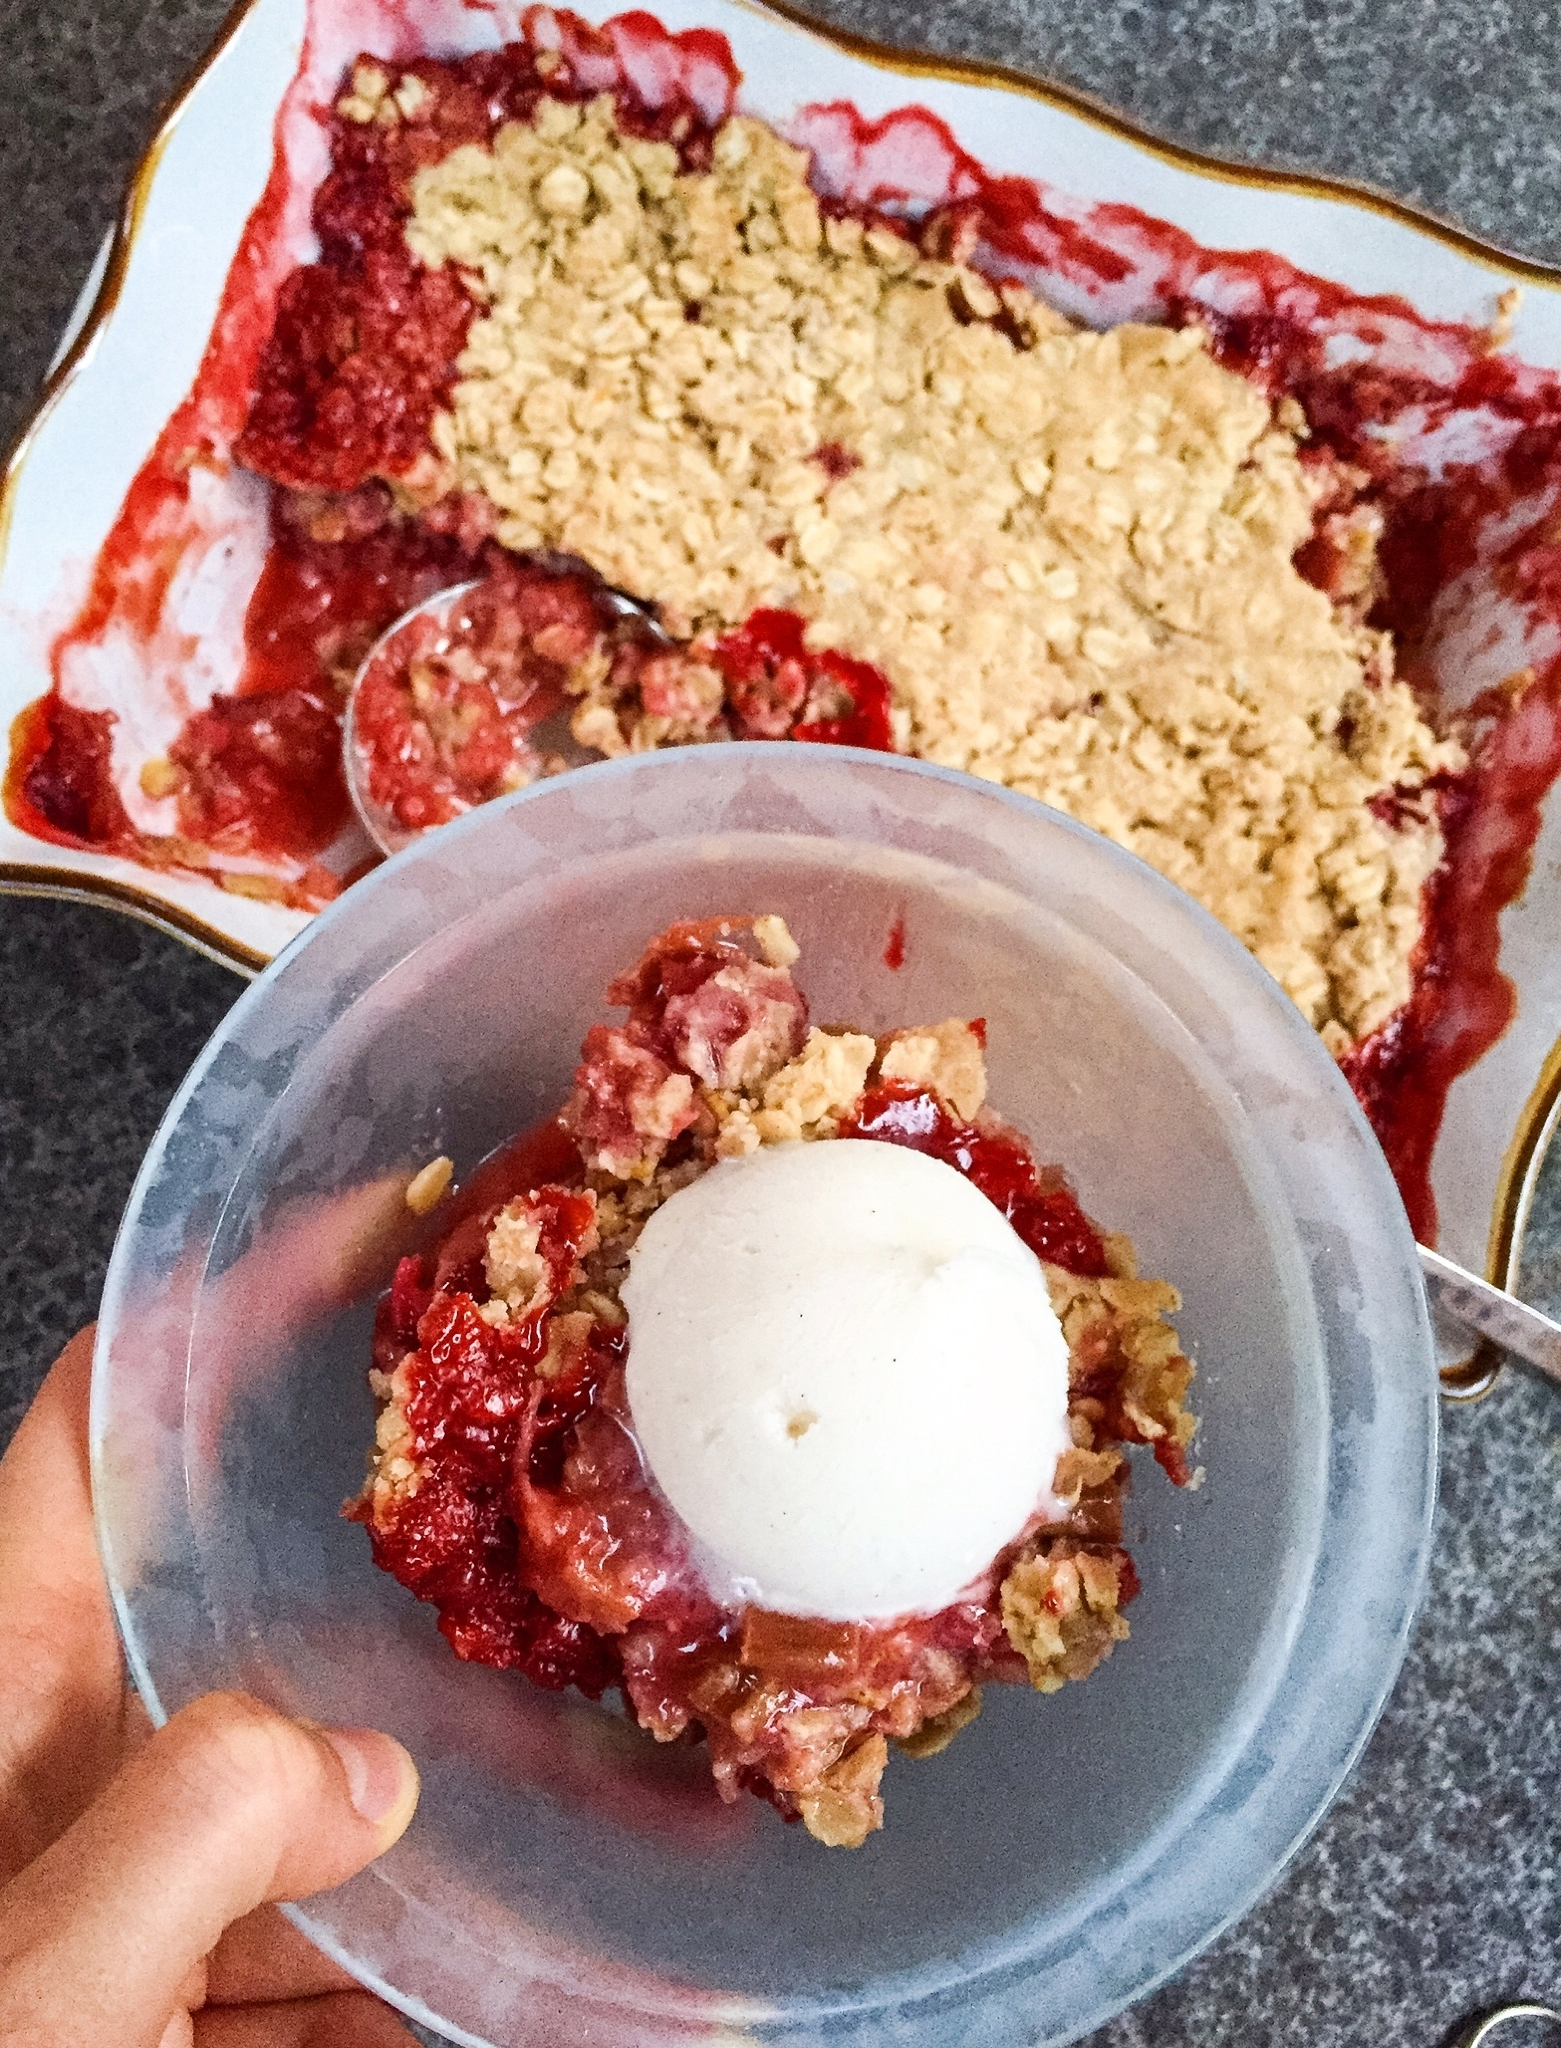 Ontario Strawberry & Rhubarb Crisp